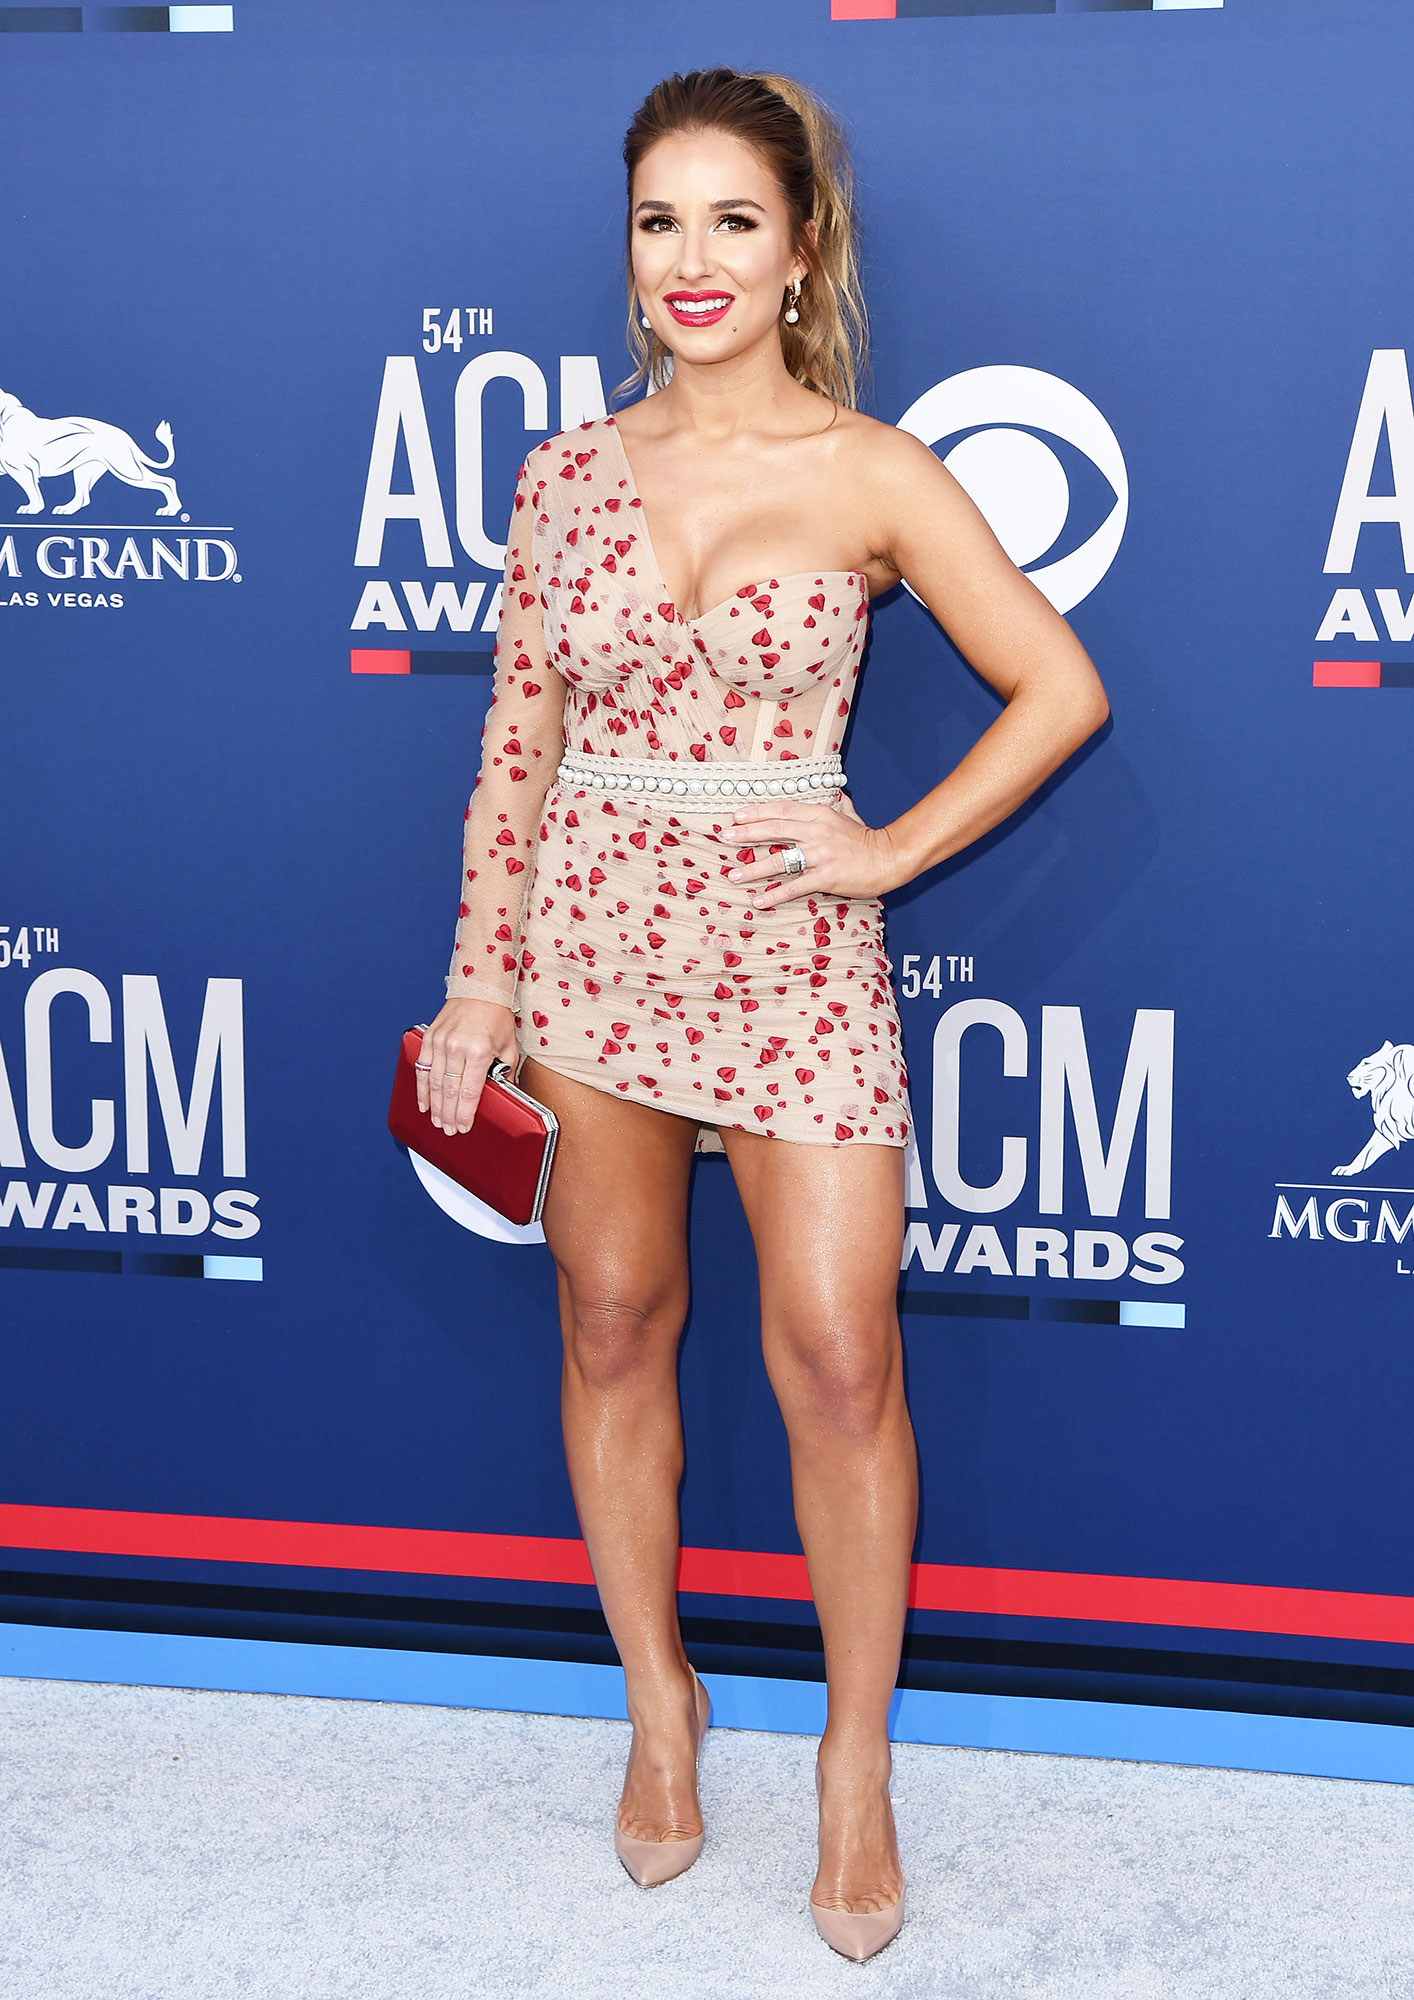 """Jessie James Decker The Best Looks From the Country Music Awards Red Carpet - The """"Lights Down Low"""" singer looked super sexy in a nude and red one-sleeve minidress."""